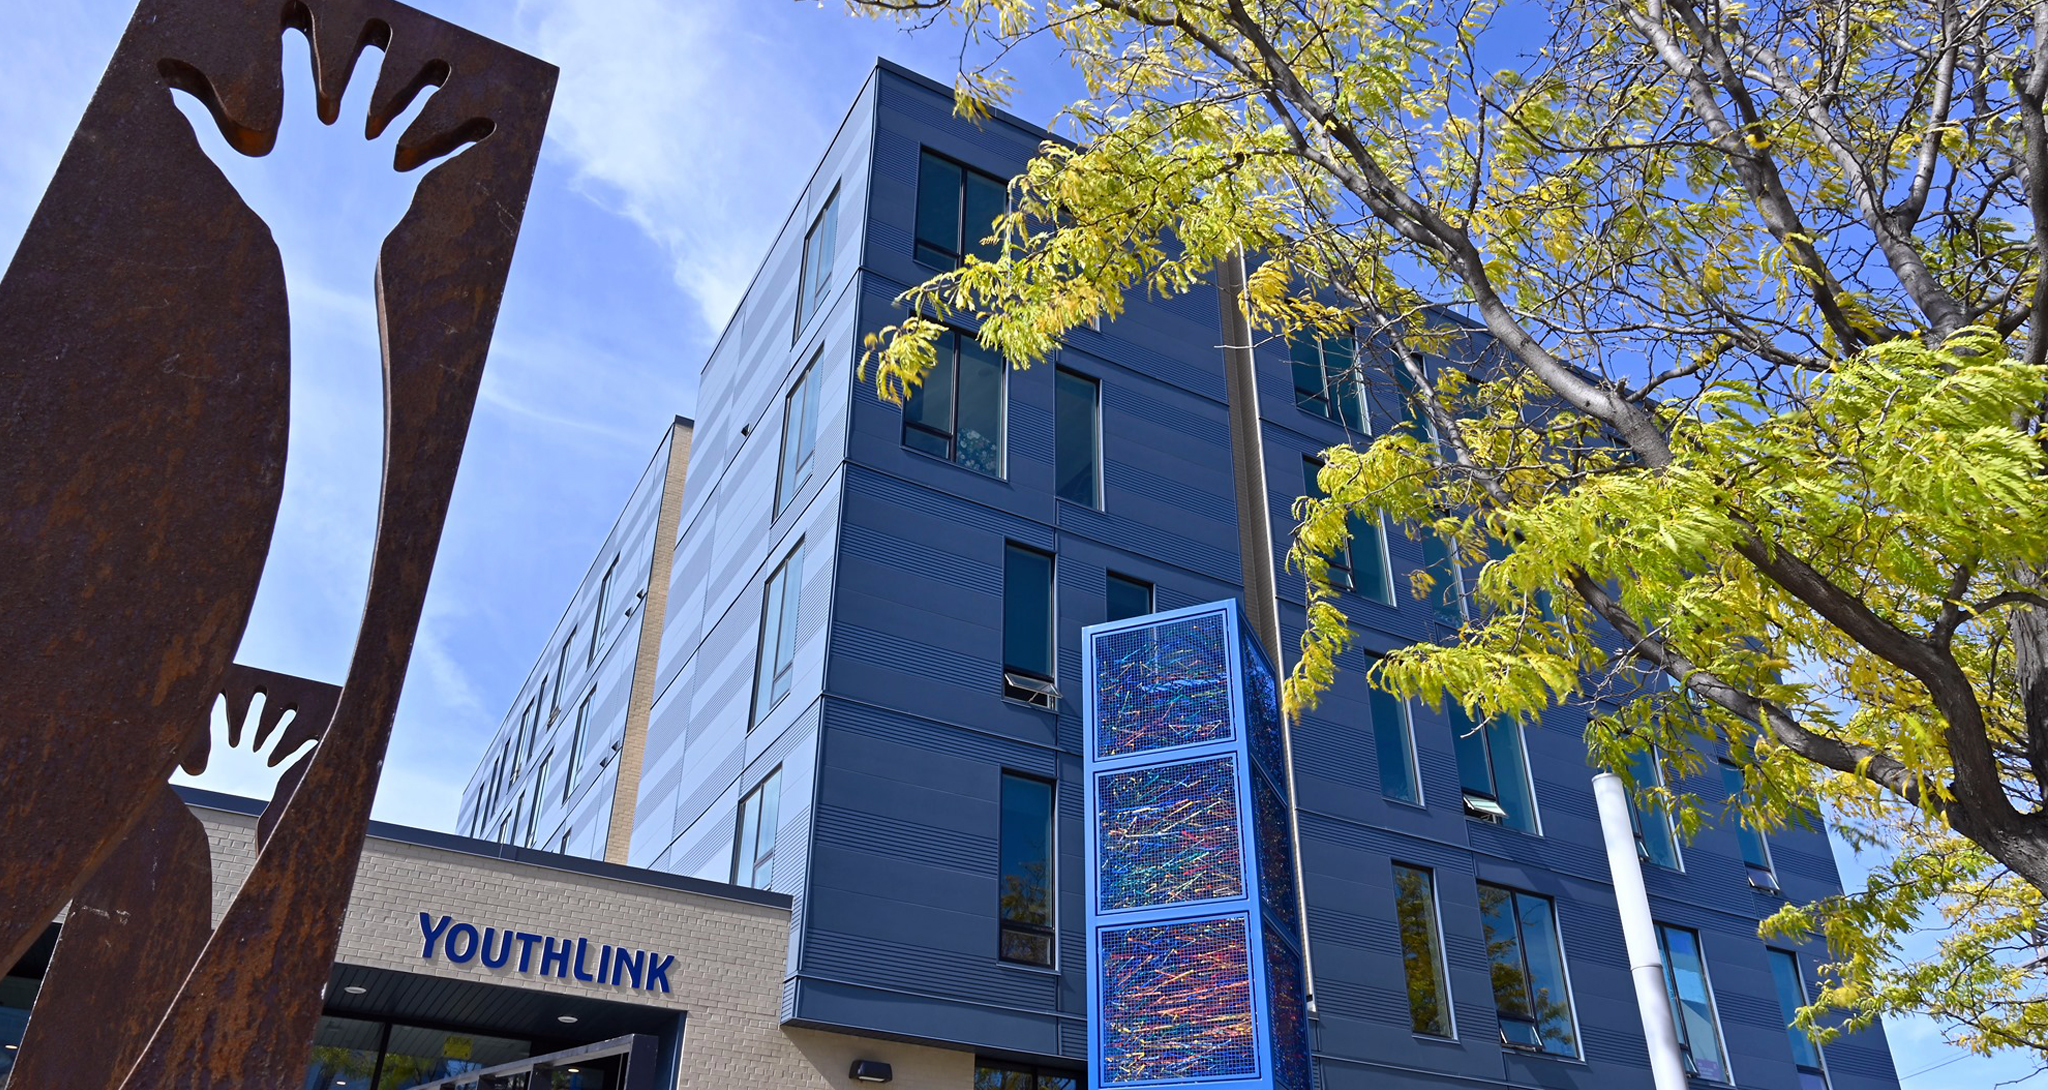 Exterior of Youthlink building